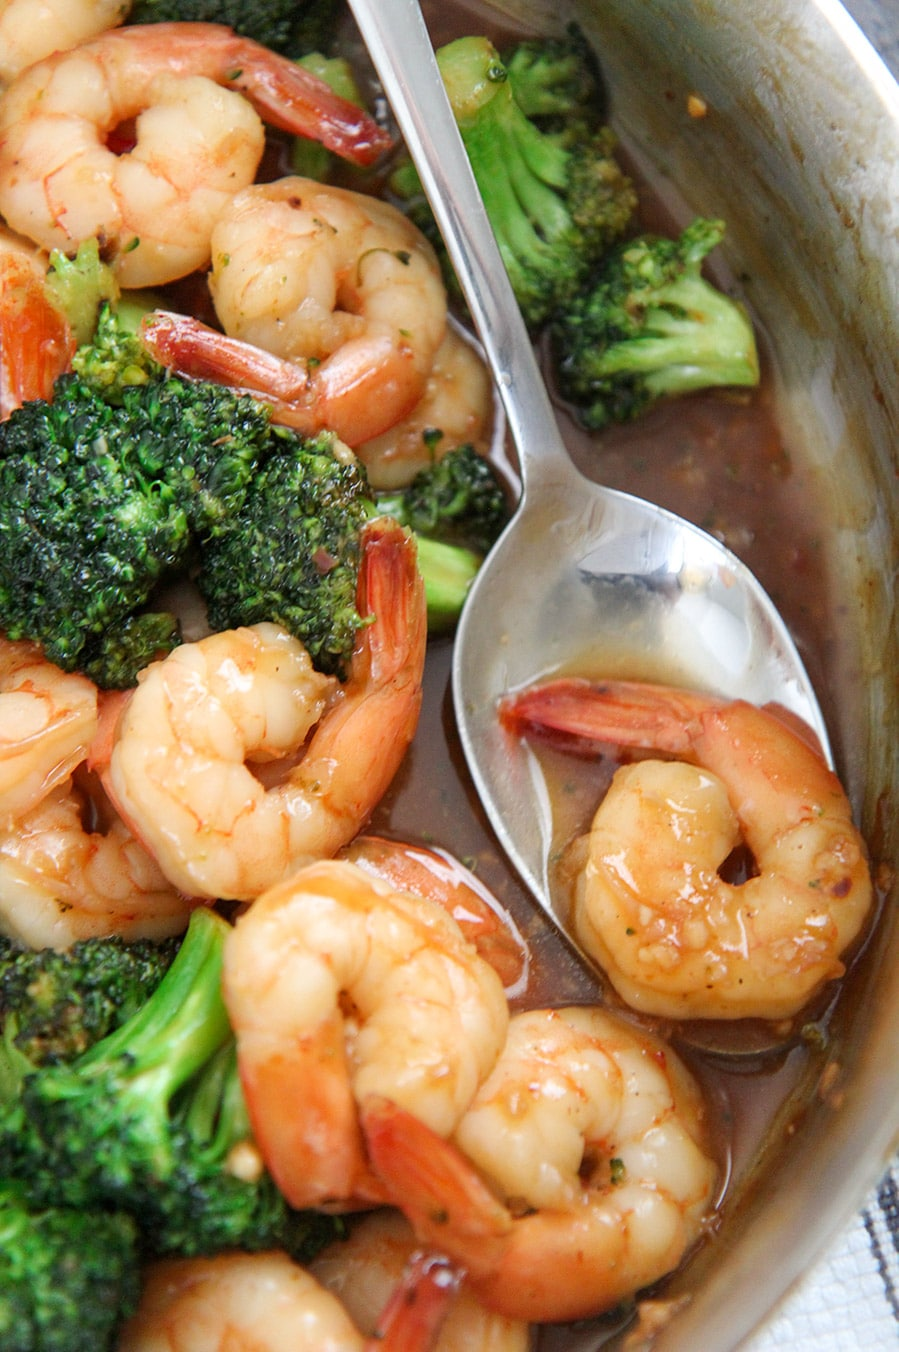 spicy honey shrimp and broccoli in a skillet with a spoon holding one shrimp.